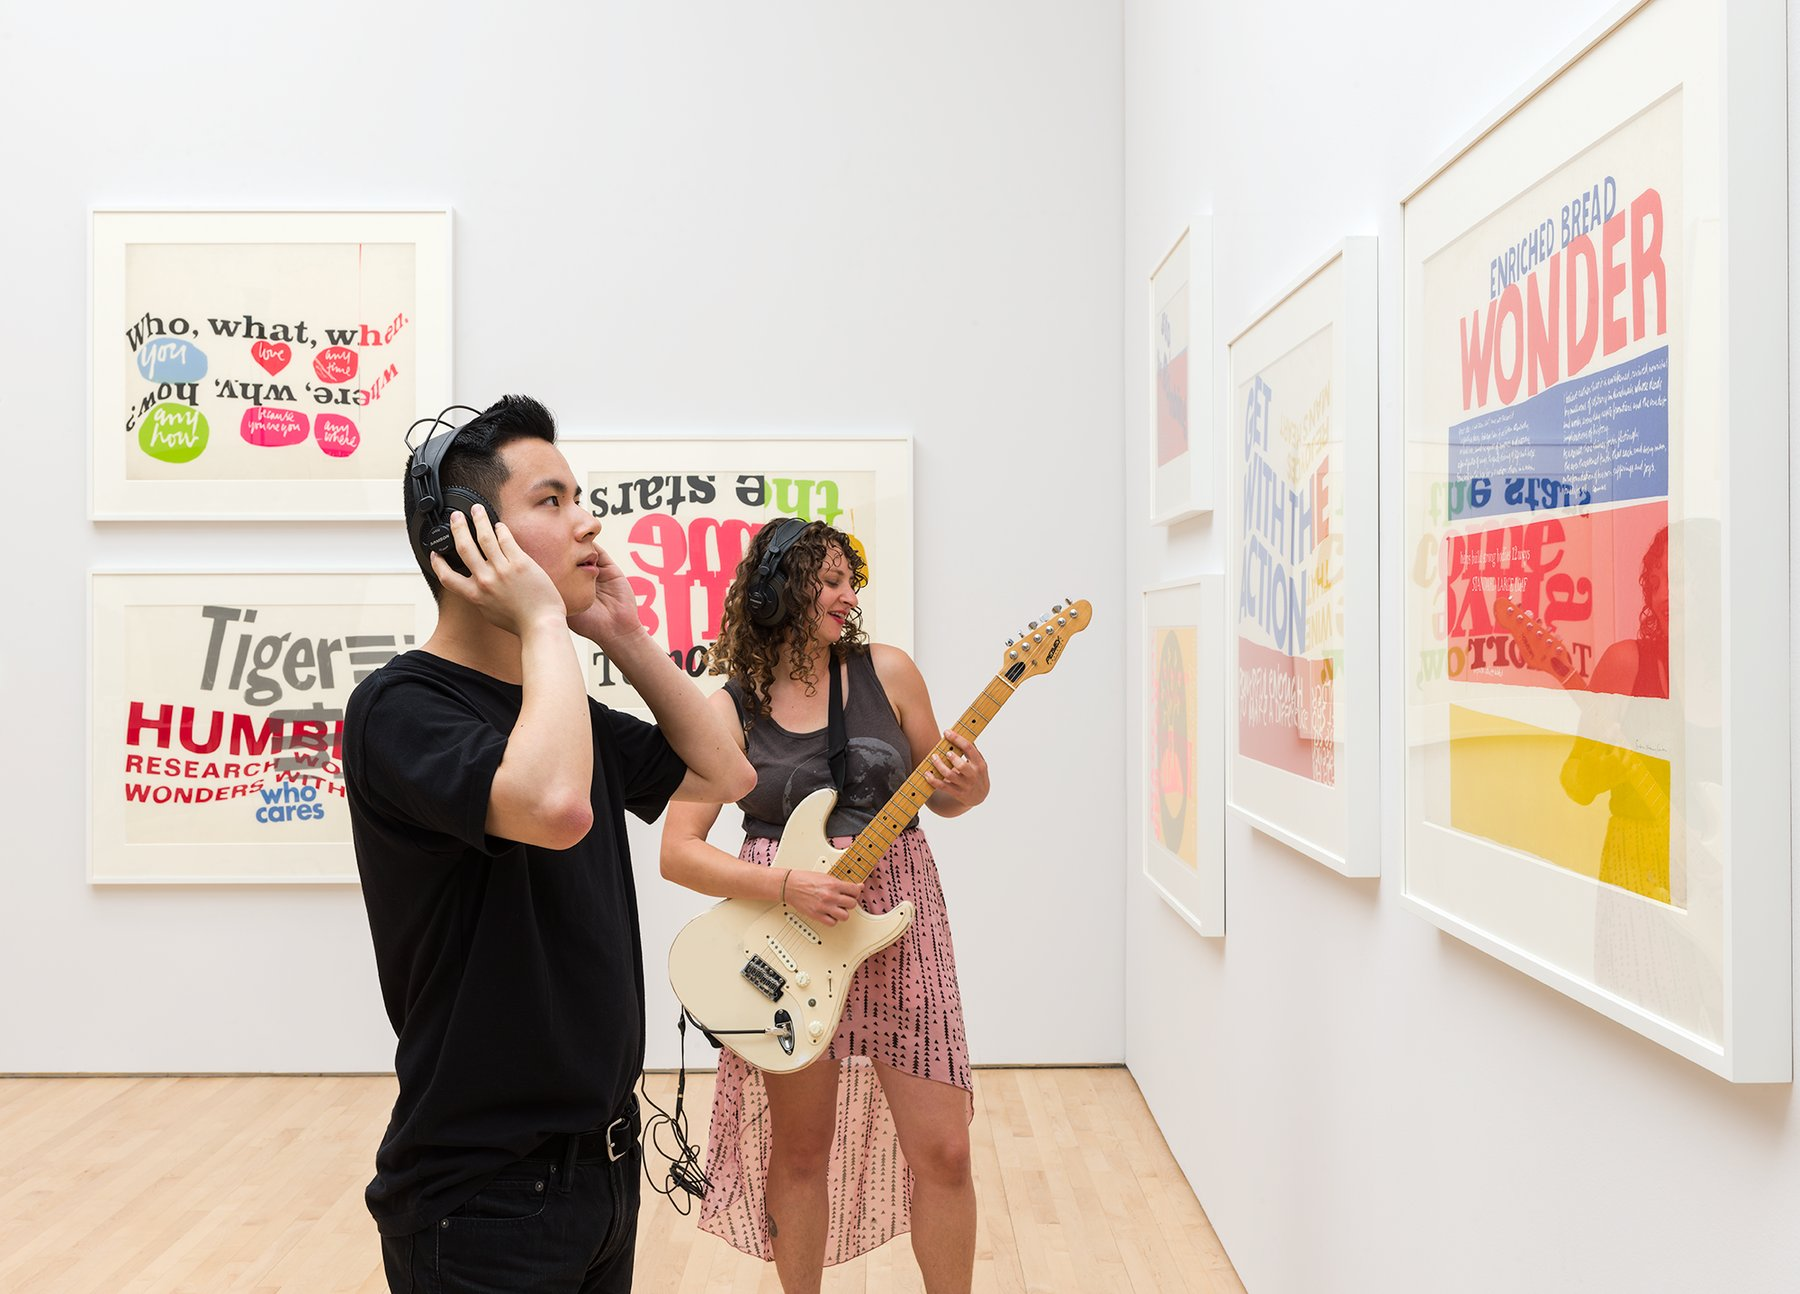 A Caucasian woman plays guitar while an Asian man listens wearing headphones in a gallery, Kallmyer/Allen, Soundtracks